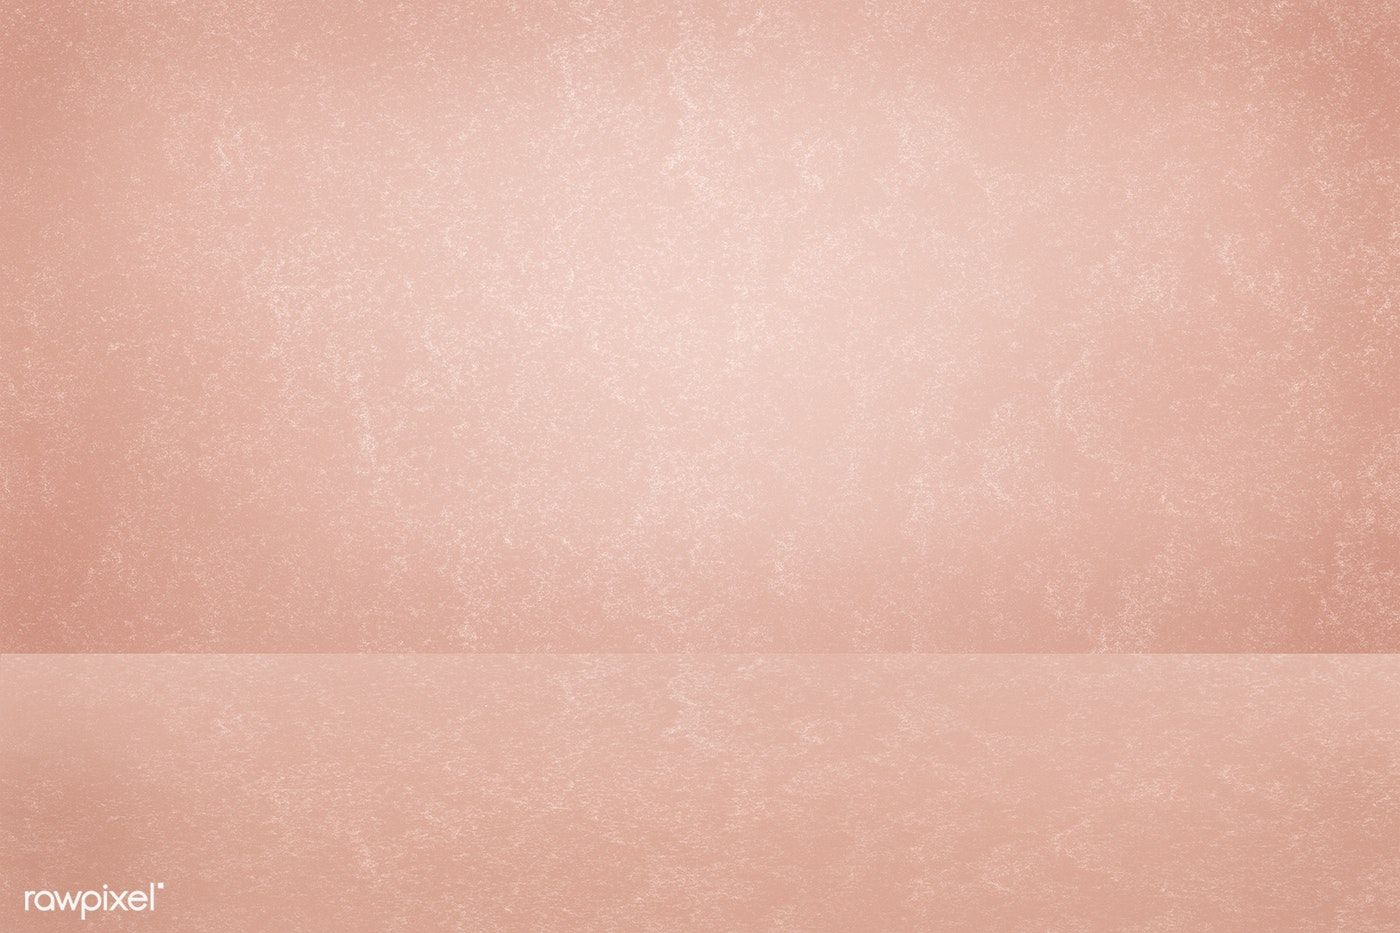 Plain pastel pink product background free image by